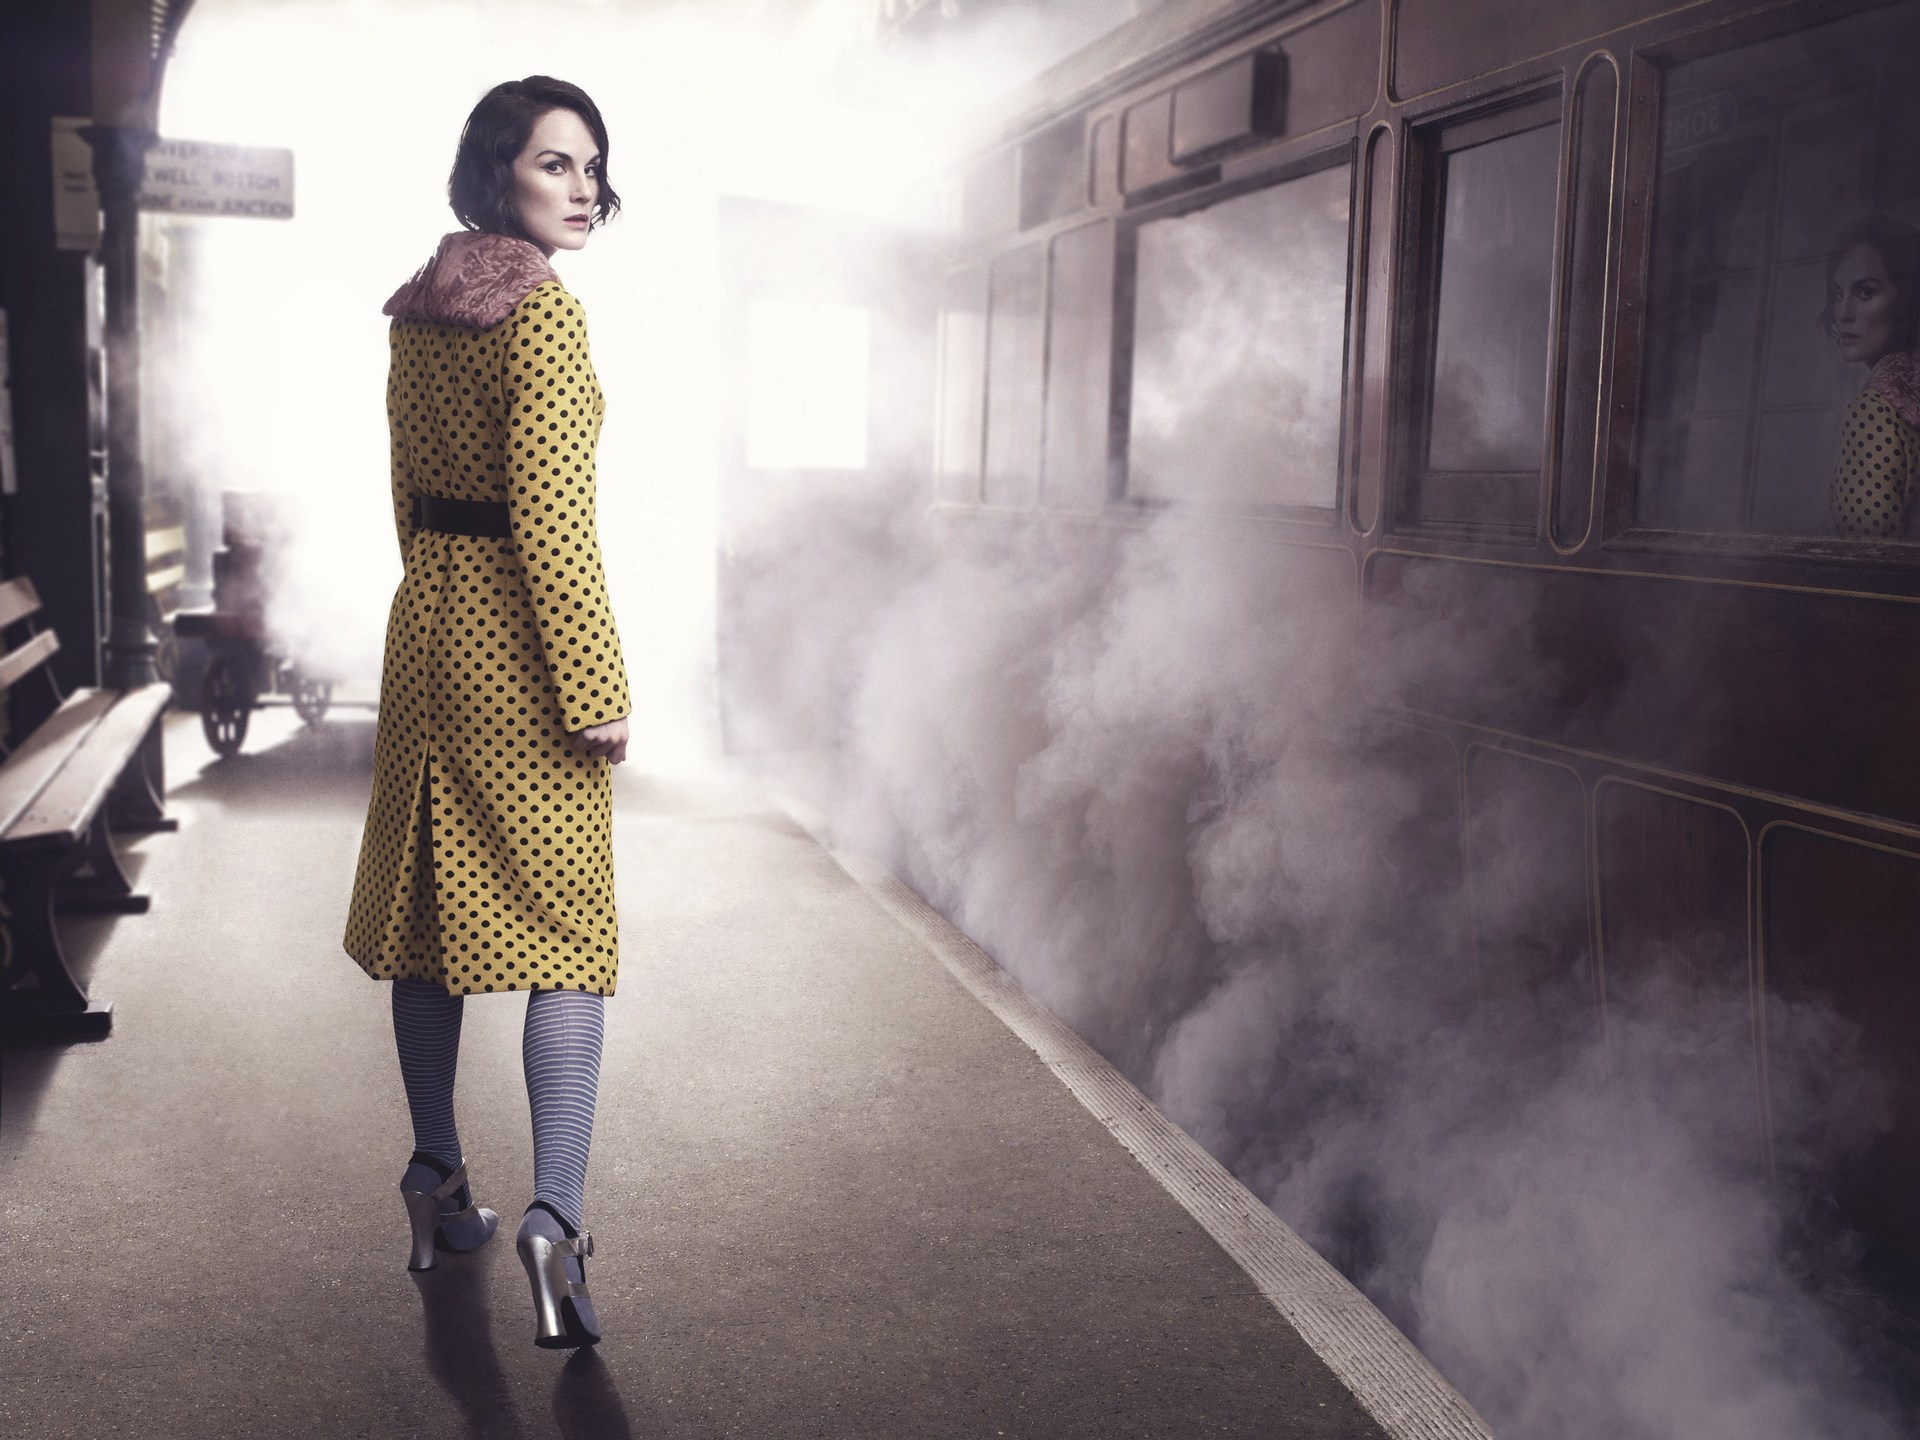 michelle dockery actress wallpaper 57972